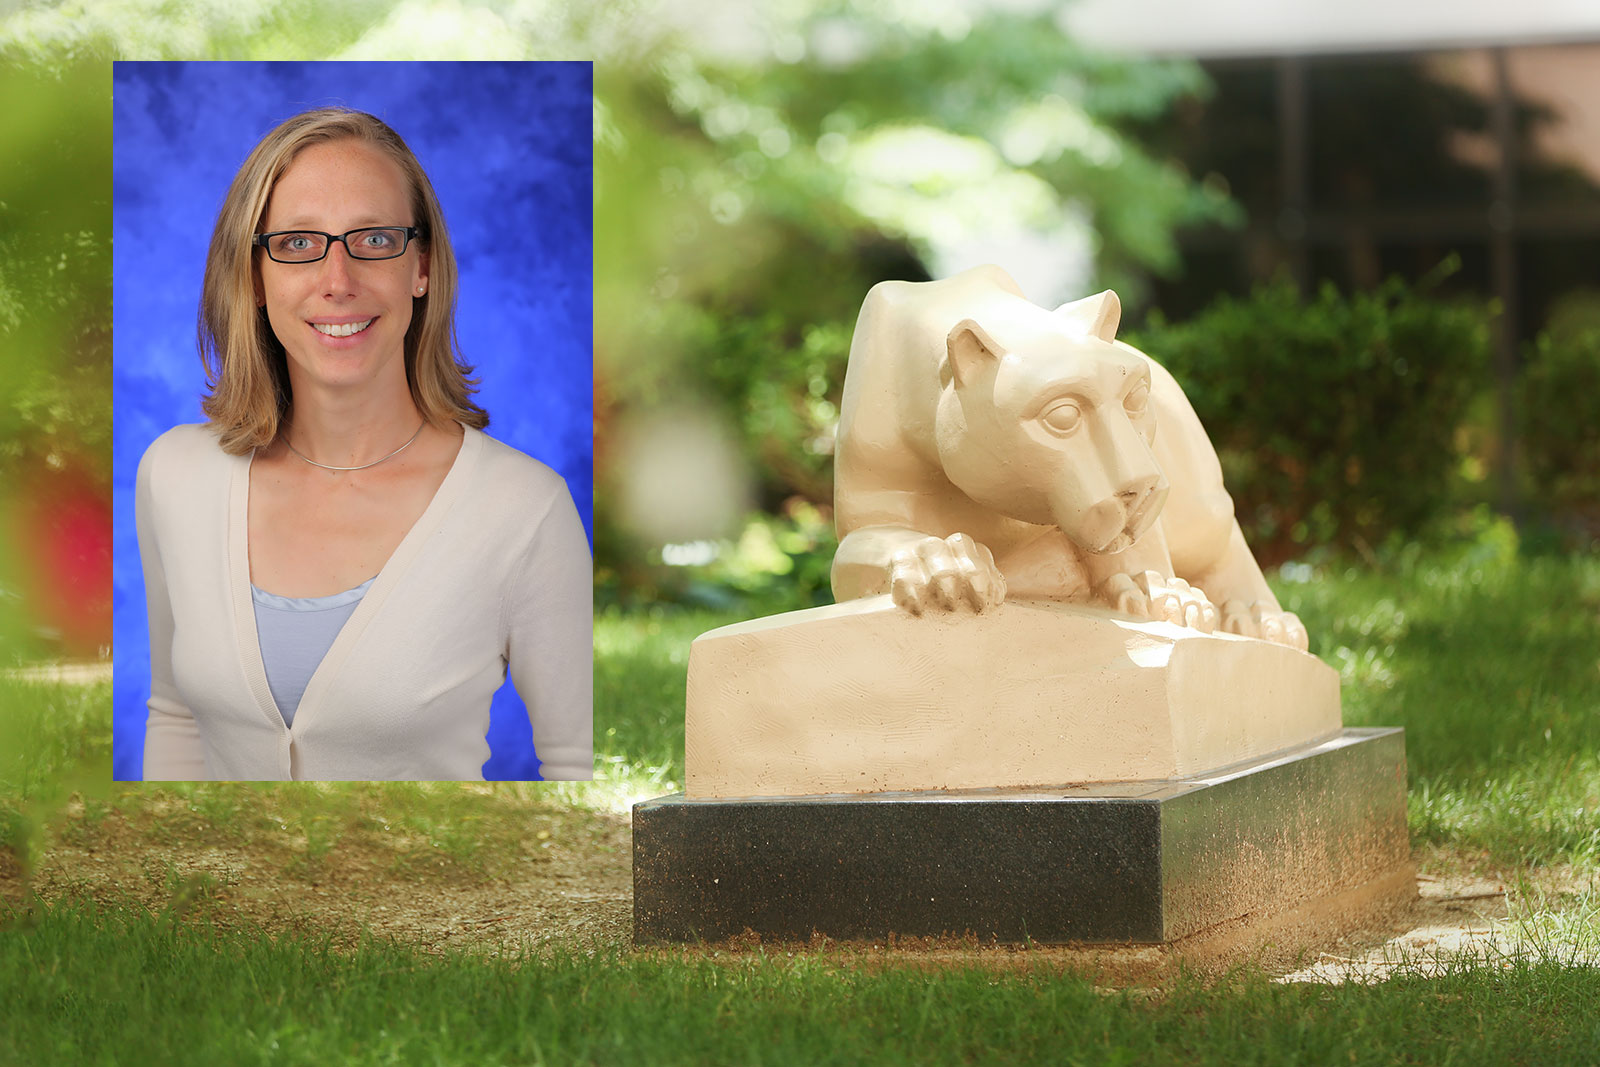 Nadine Hempel, PhD, Associate Professor of Pharmacology at Penn State College of Medicine and Penn State Cancer Institute member, recently received an equipment award from Agilent Technologies. A photo of Hempel, wearing a white blouse and glasses and standing in front of a blue photo background, is superimposed on an image of the College's Nittany Lion mascot statue outdoors, with trees and flowers visible in the background.